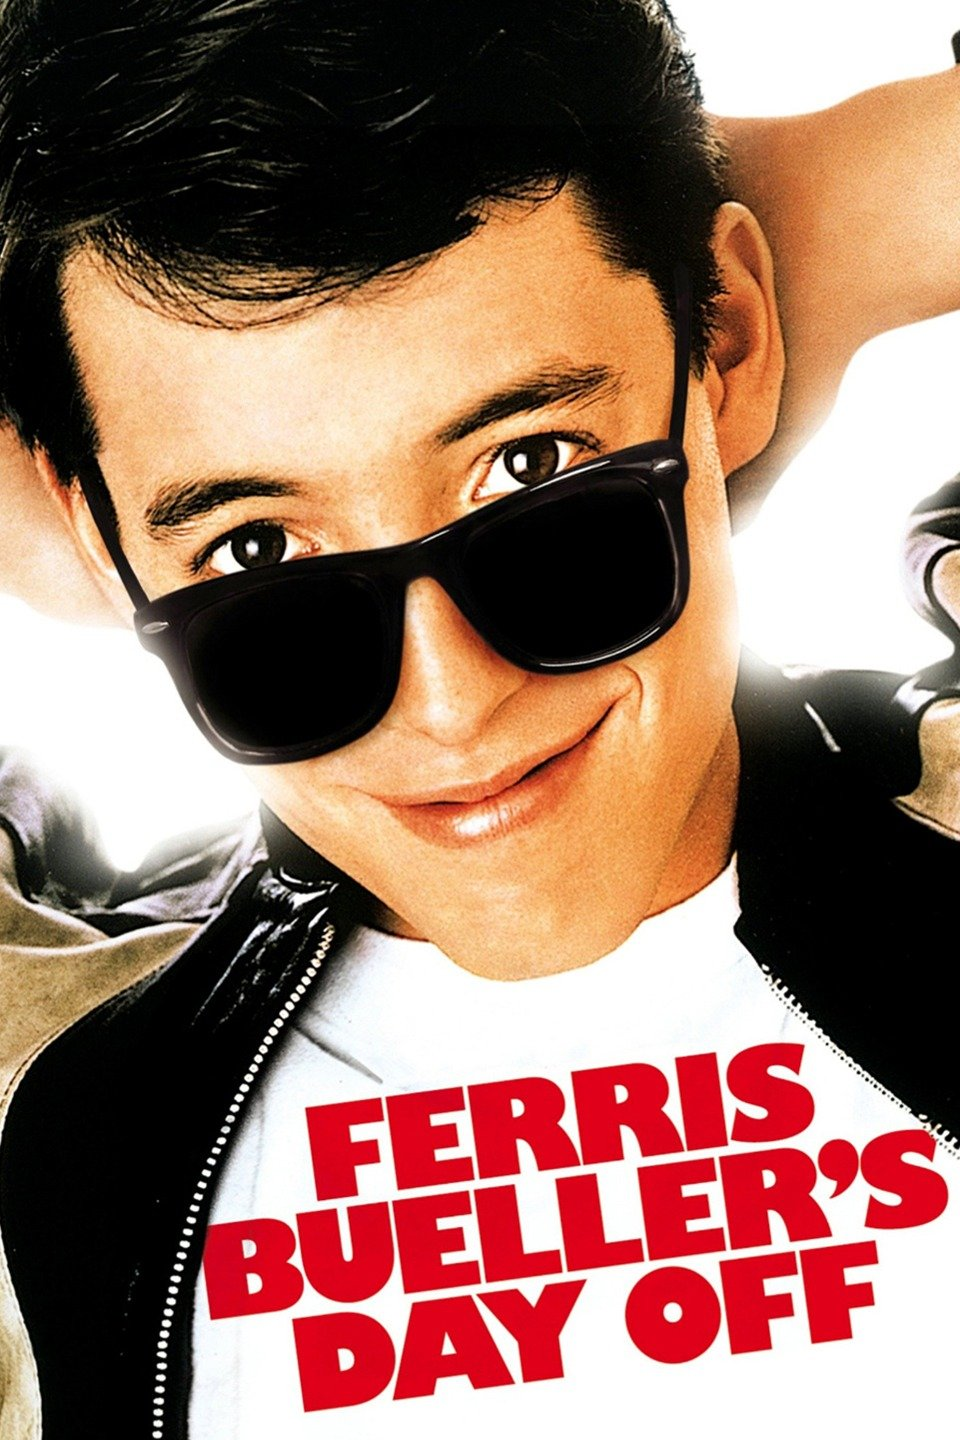 Image result for Ferris Bueller's Day Off, 1986